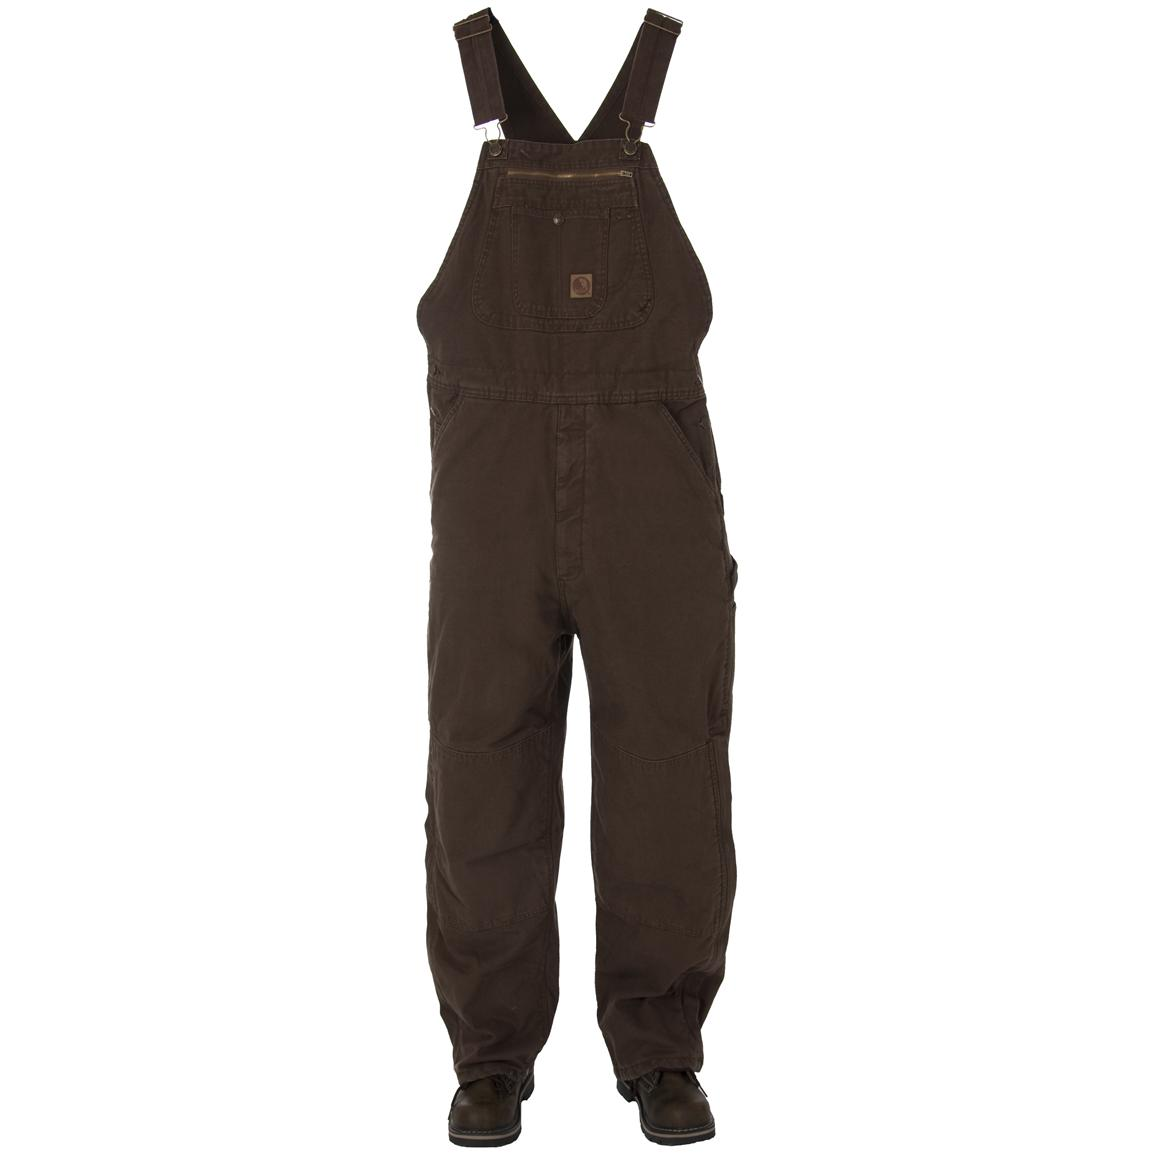 Men's Berne® Traditional Washed Insulated Bib Overalls, Bark